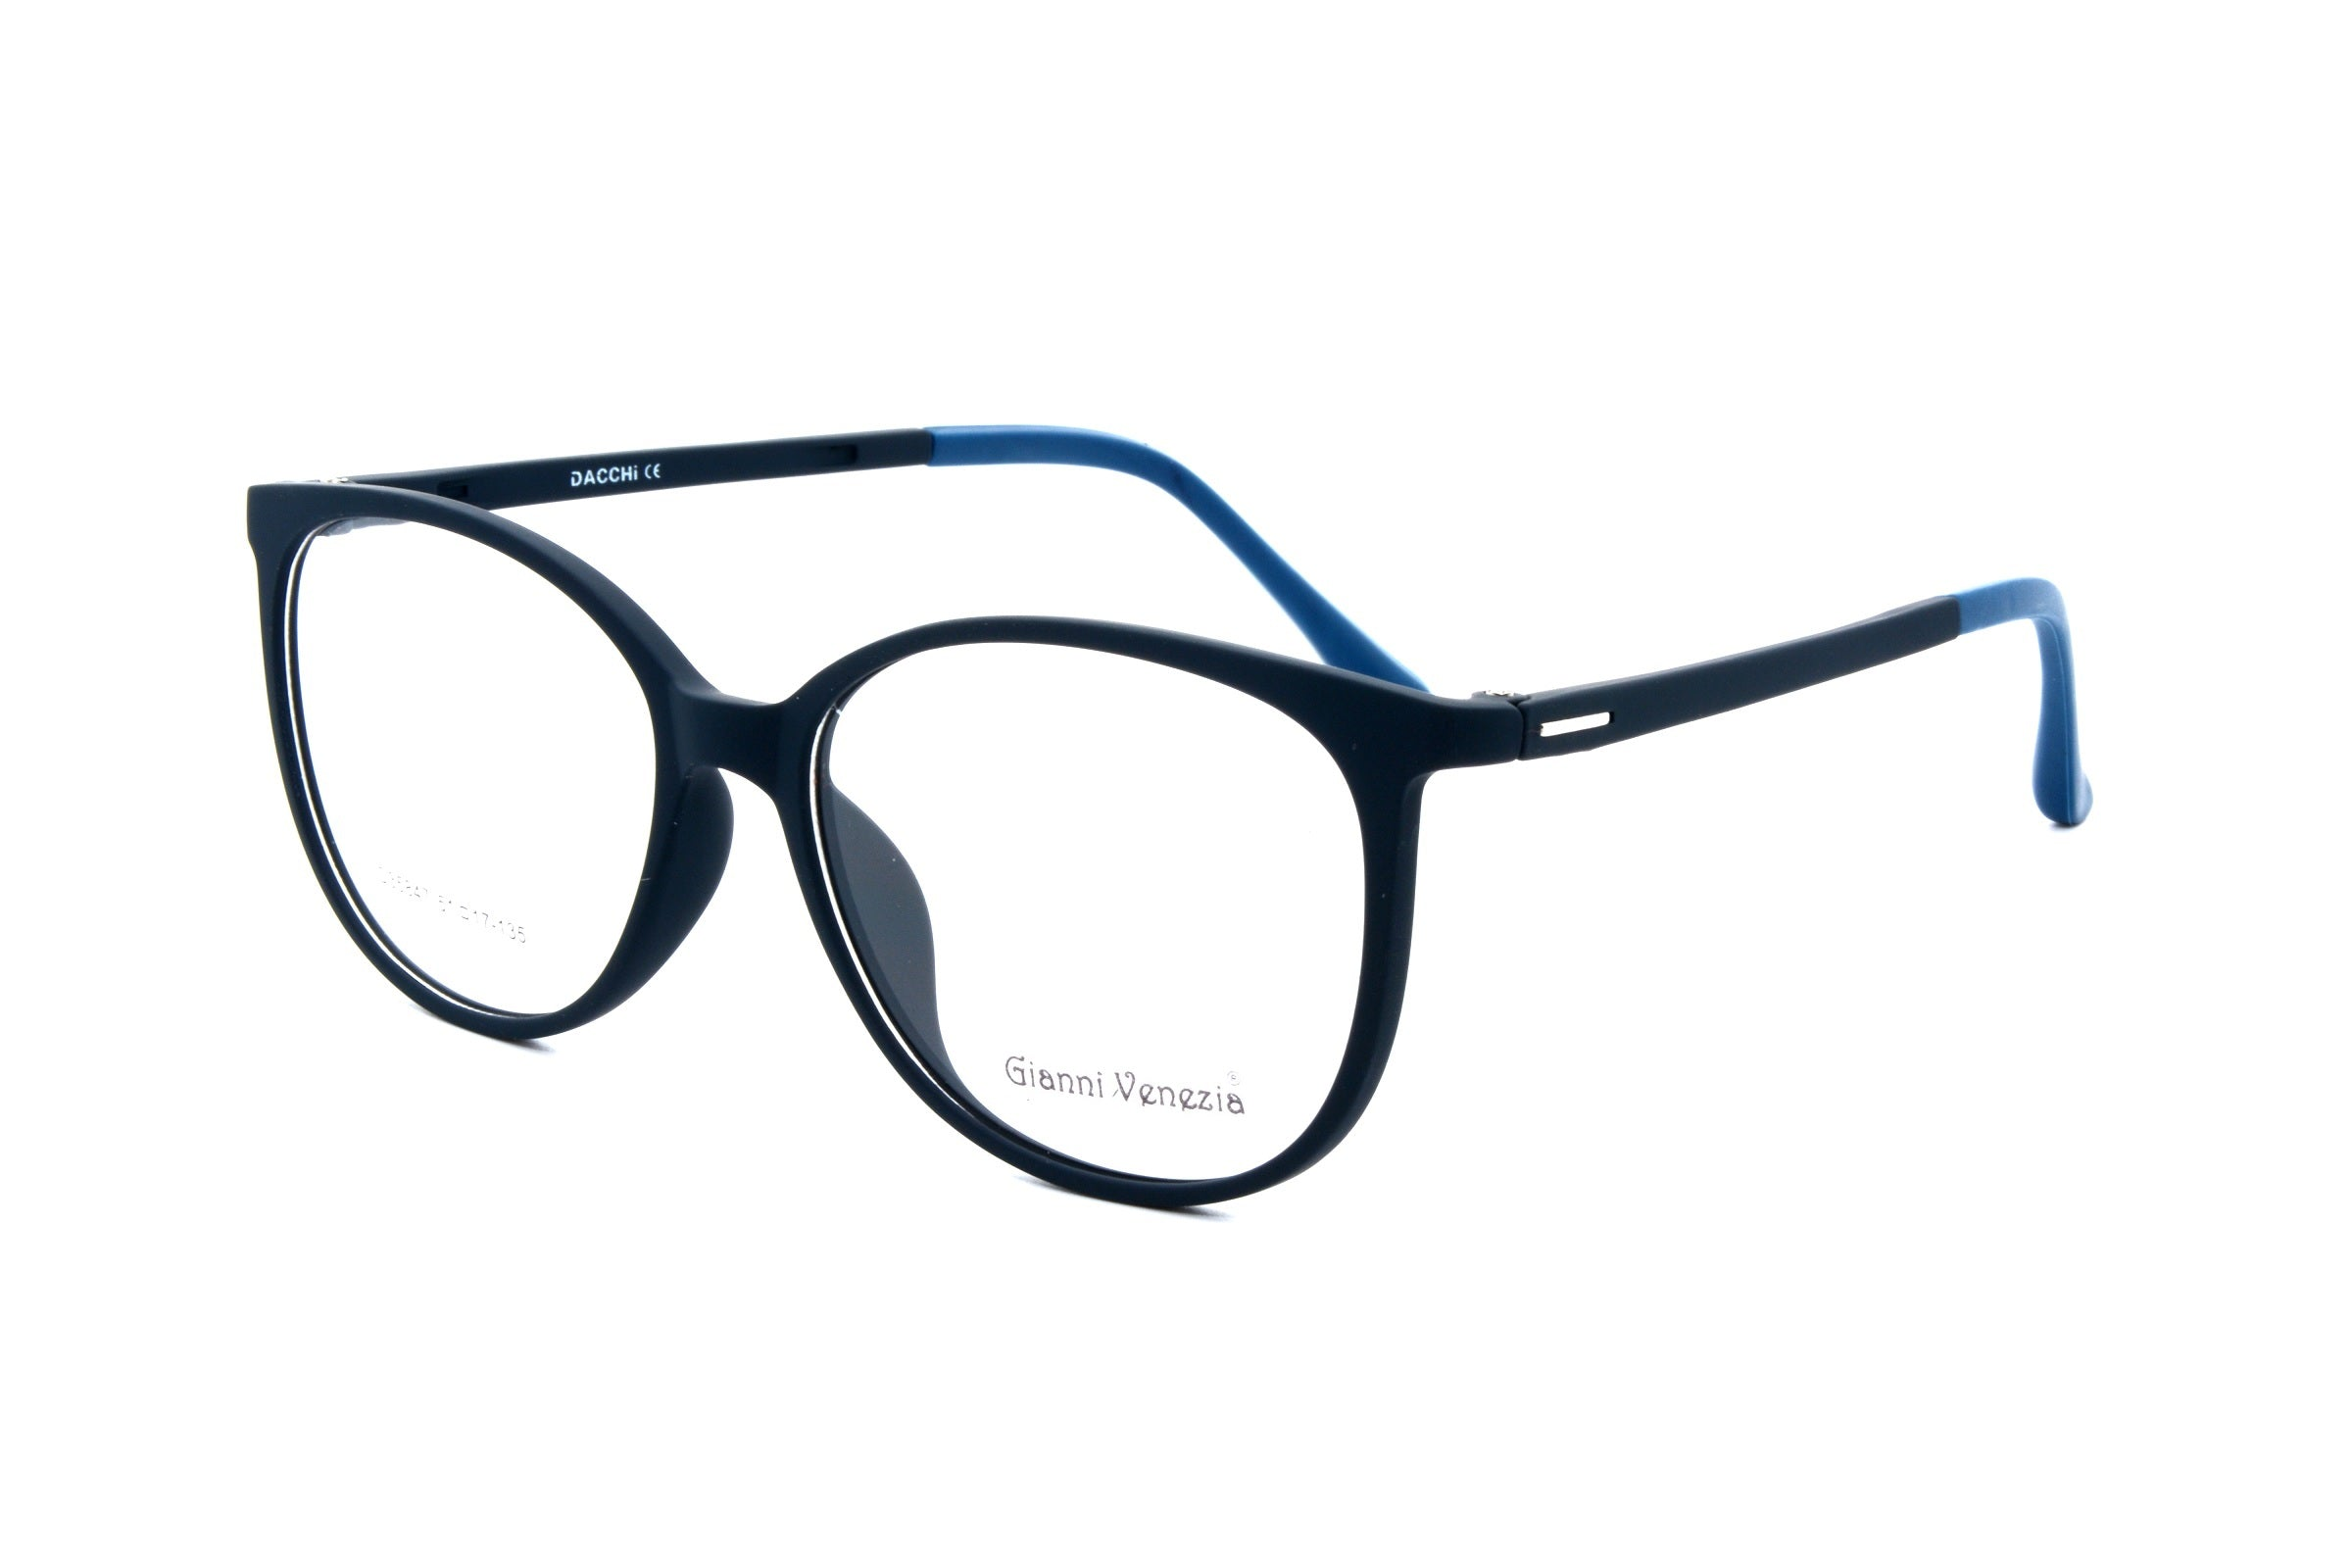 Gianni Vennezia eyewear 35847, C3 - Optics Trading